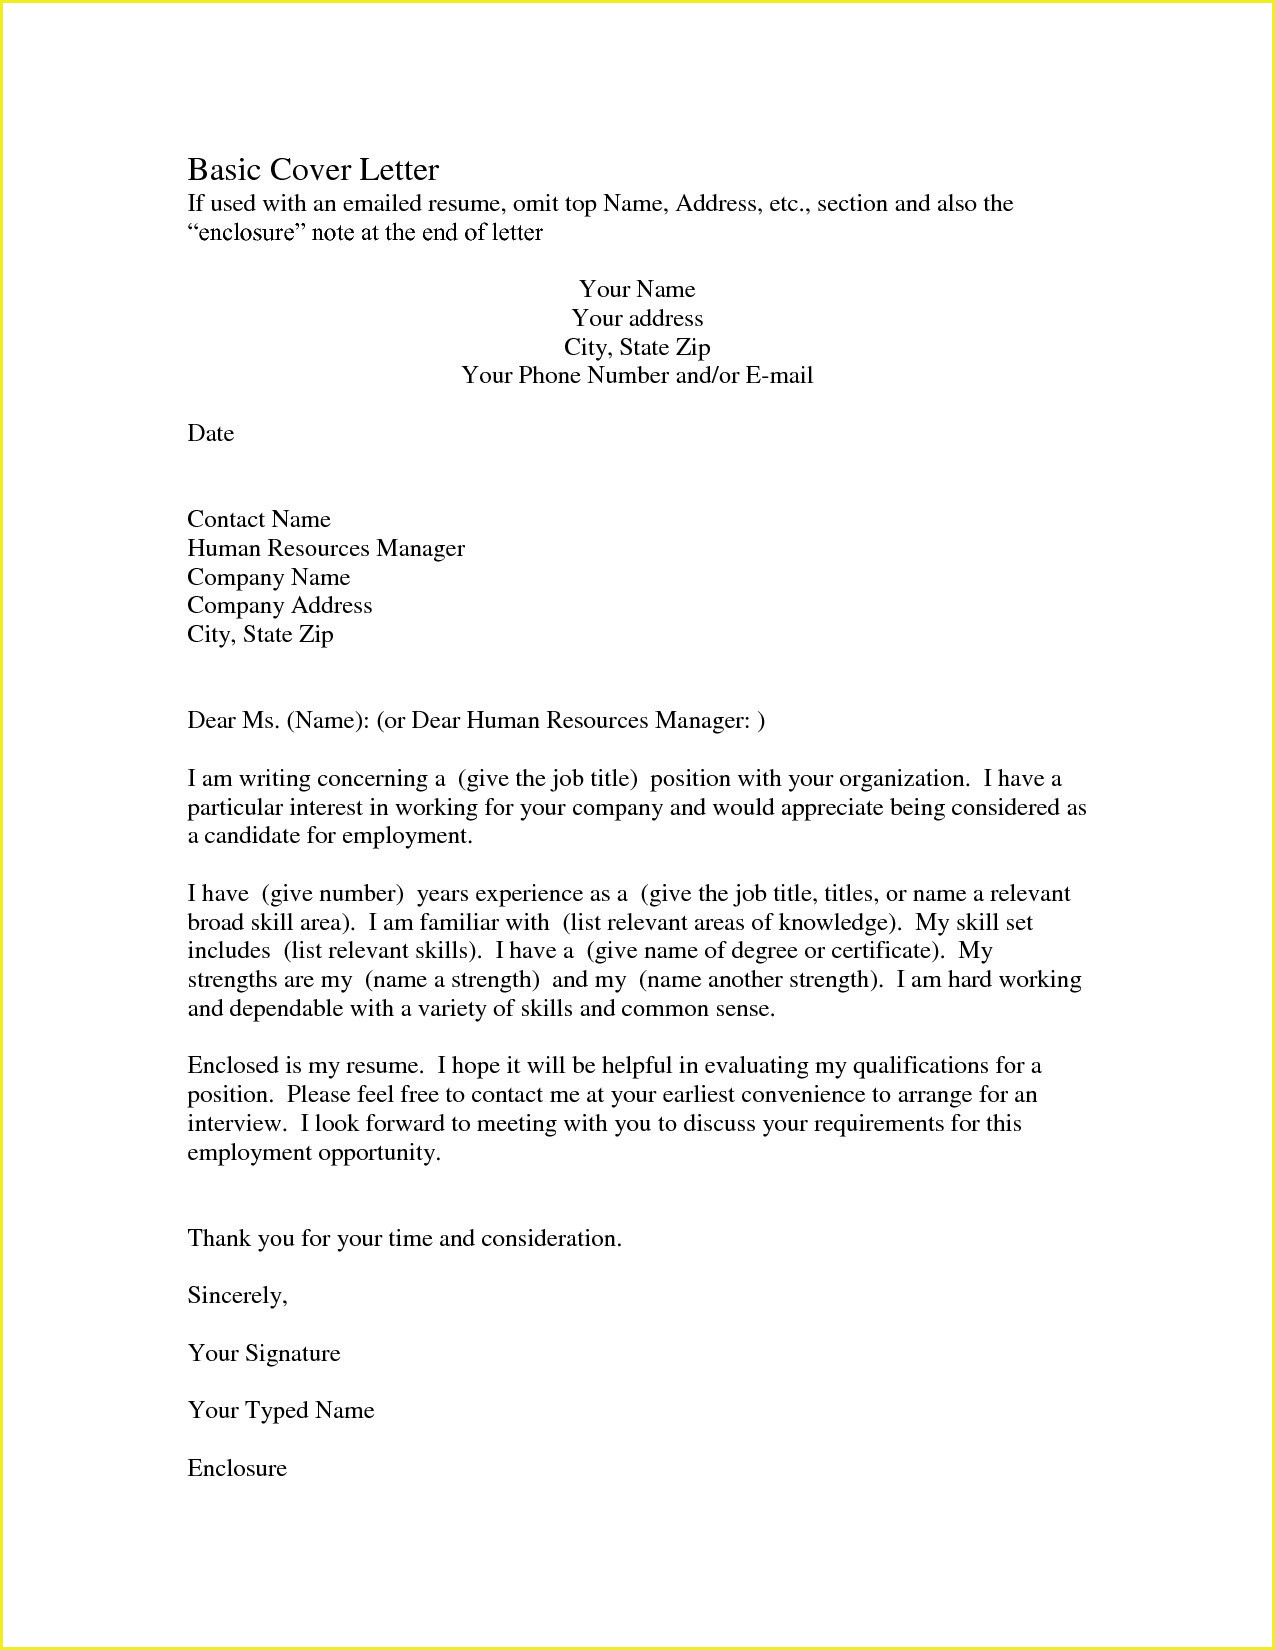 Job Title In Resume - Application Letter Sample Luxury Cover Letter for Resume Awesome